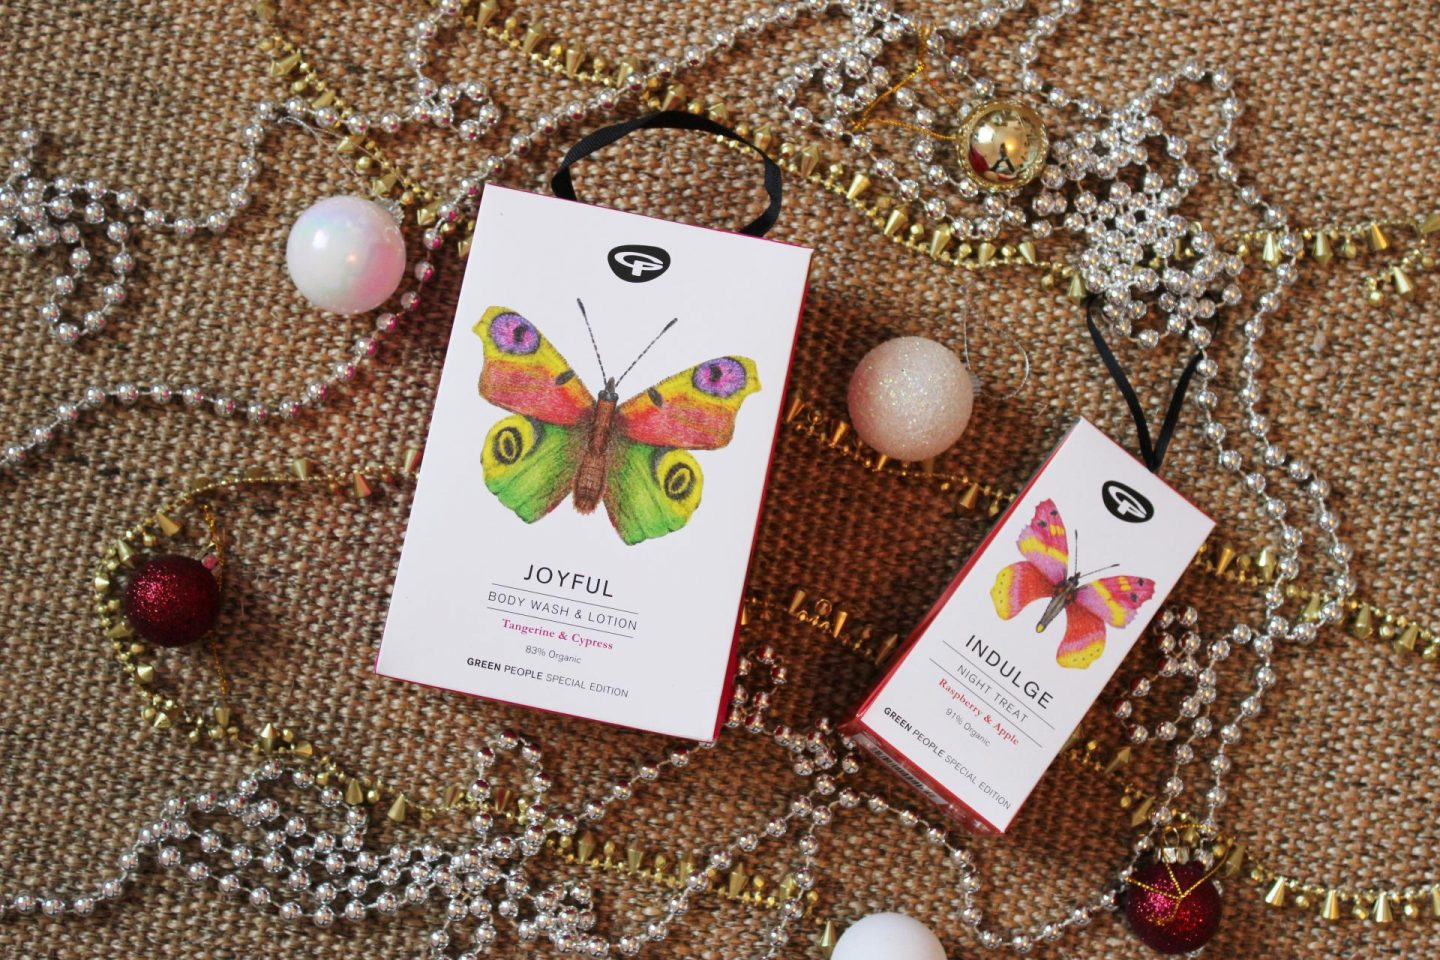 Organic Christmas Gifts from Green People | Review & Giveaway